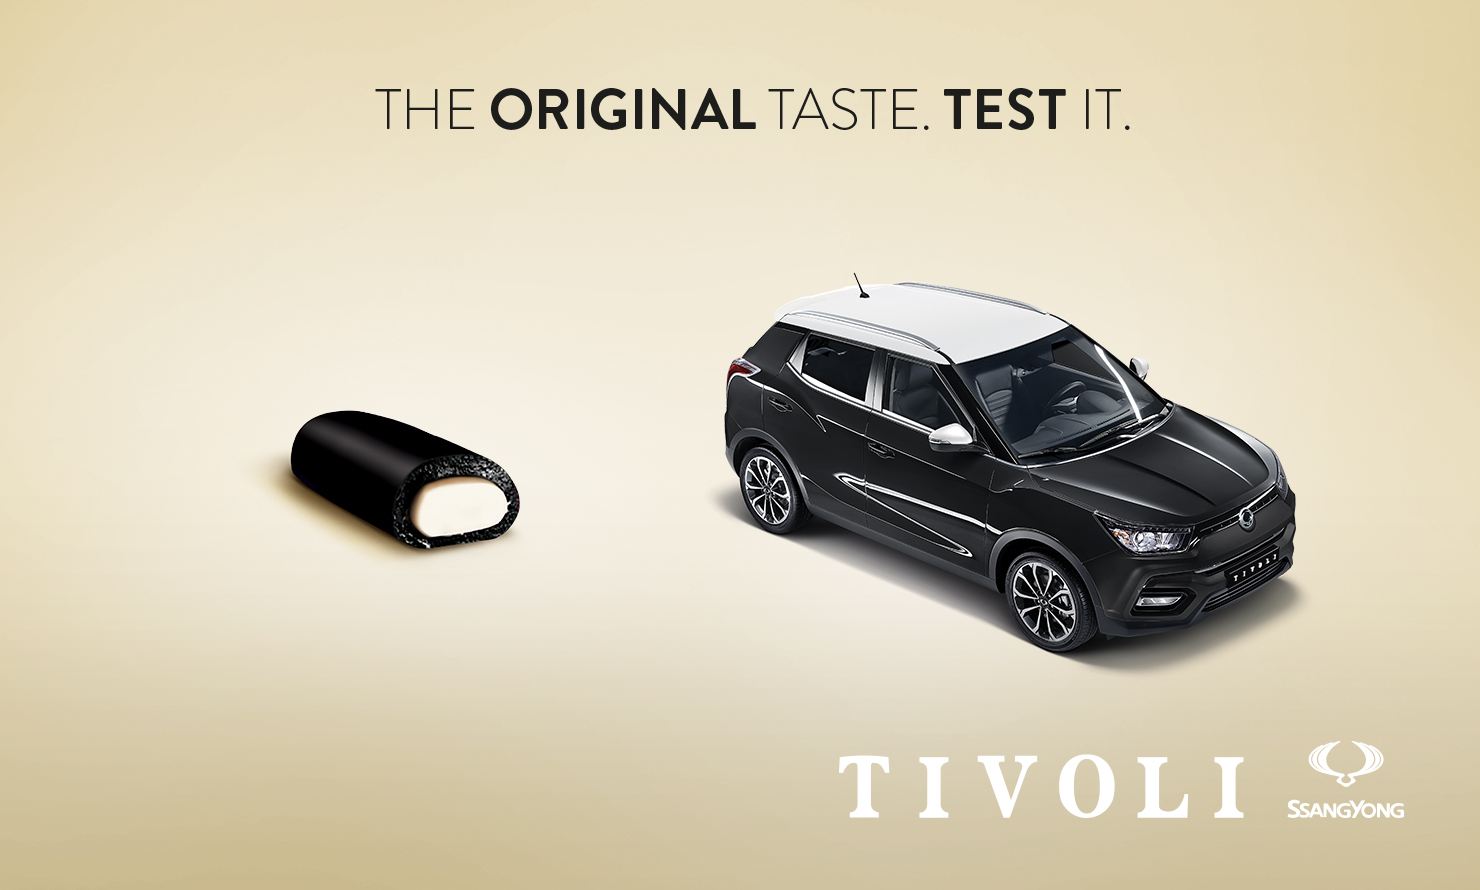 https://kubelibre.com/uploads/Slider-work-tutti-clienti/ssangyong-tivoli-the-original-taste-test-it-3.jpg